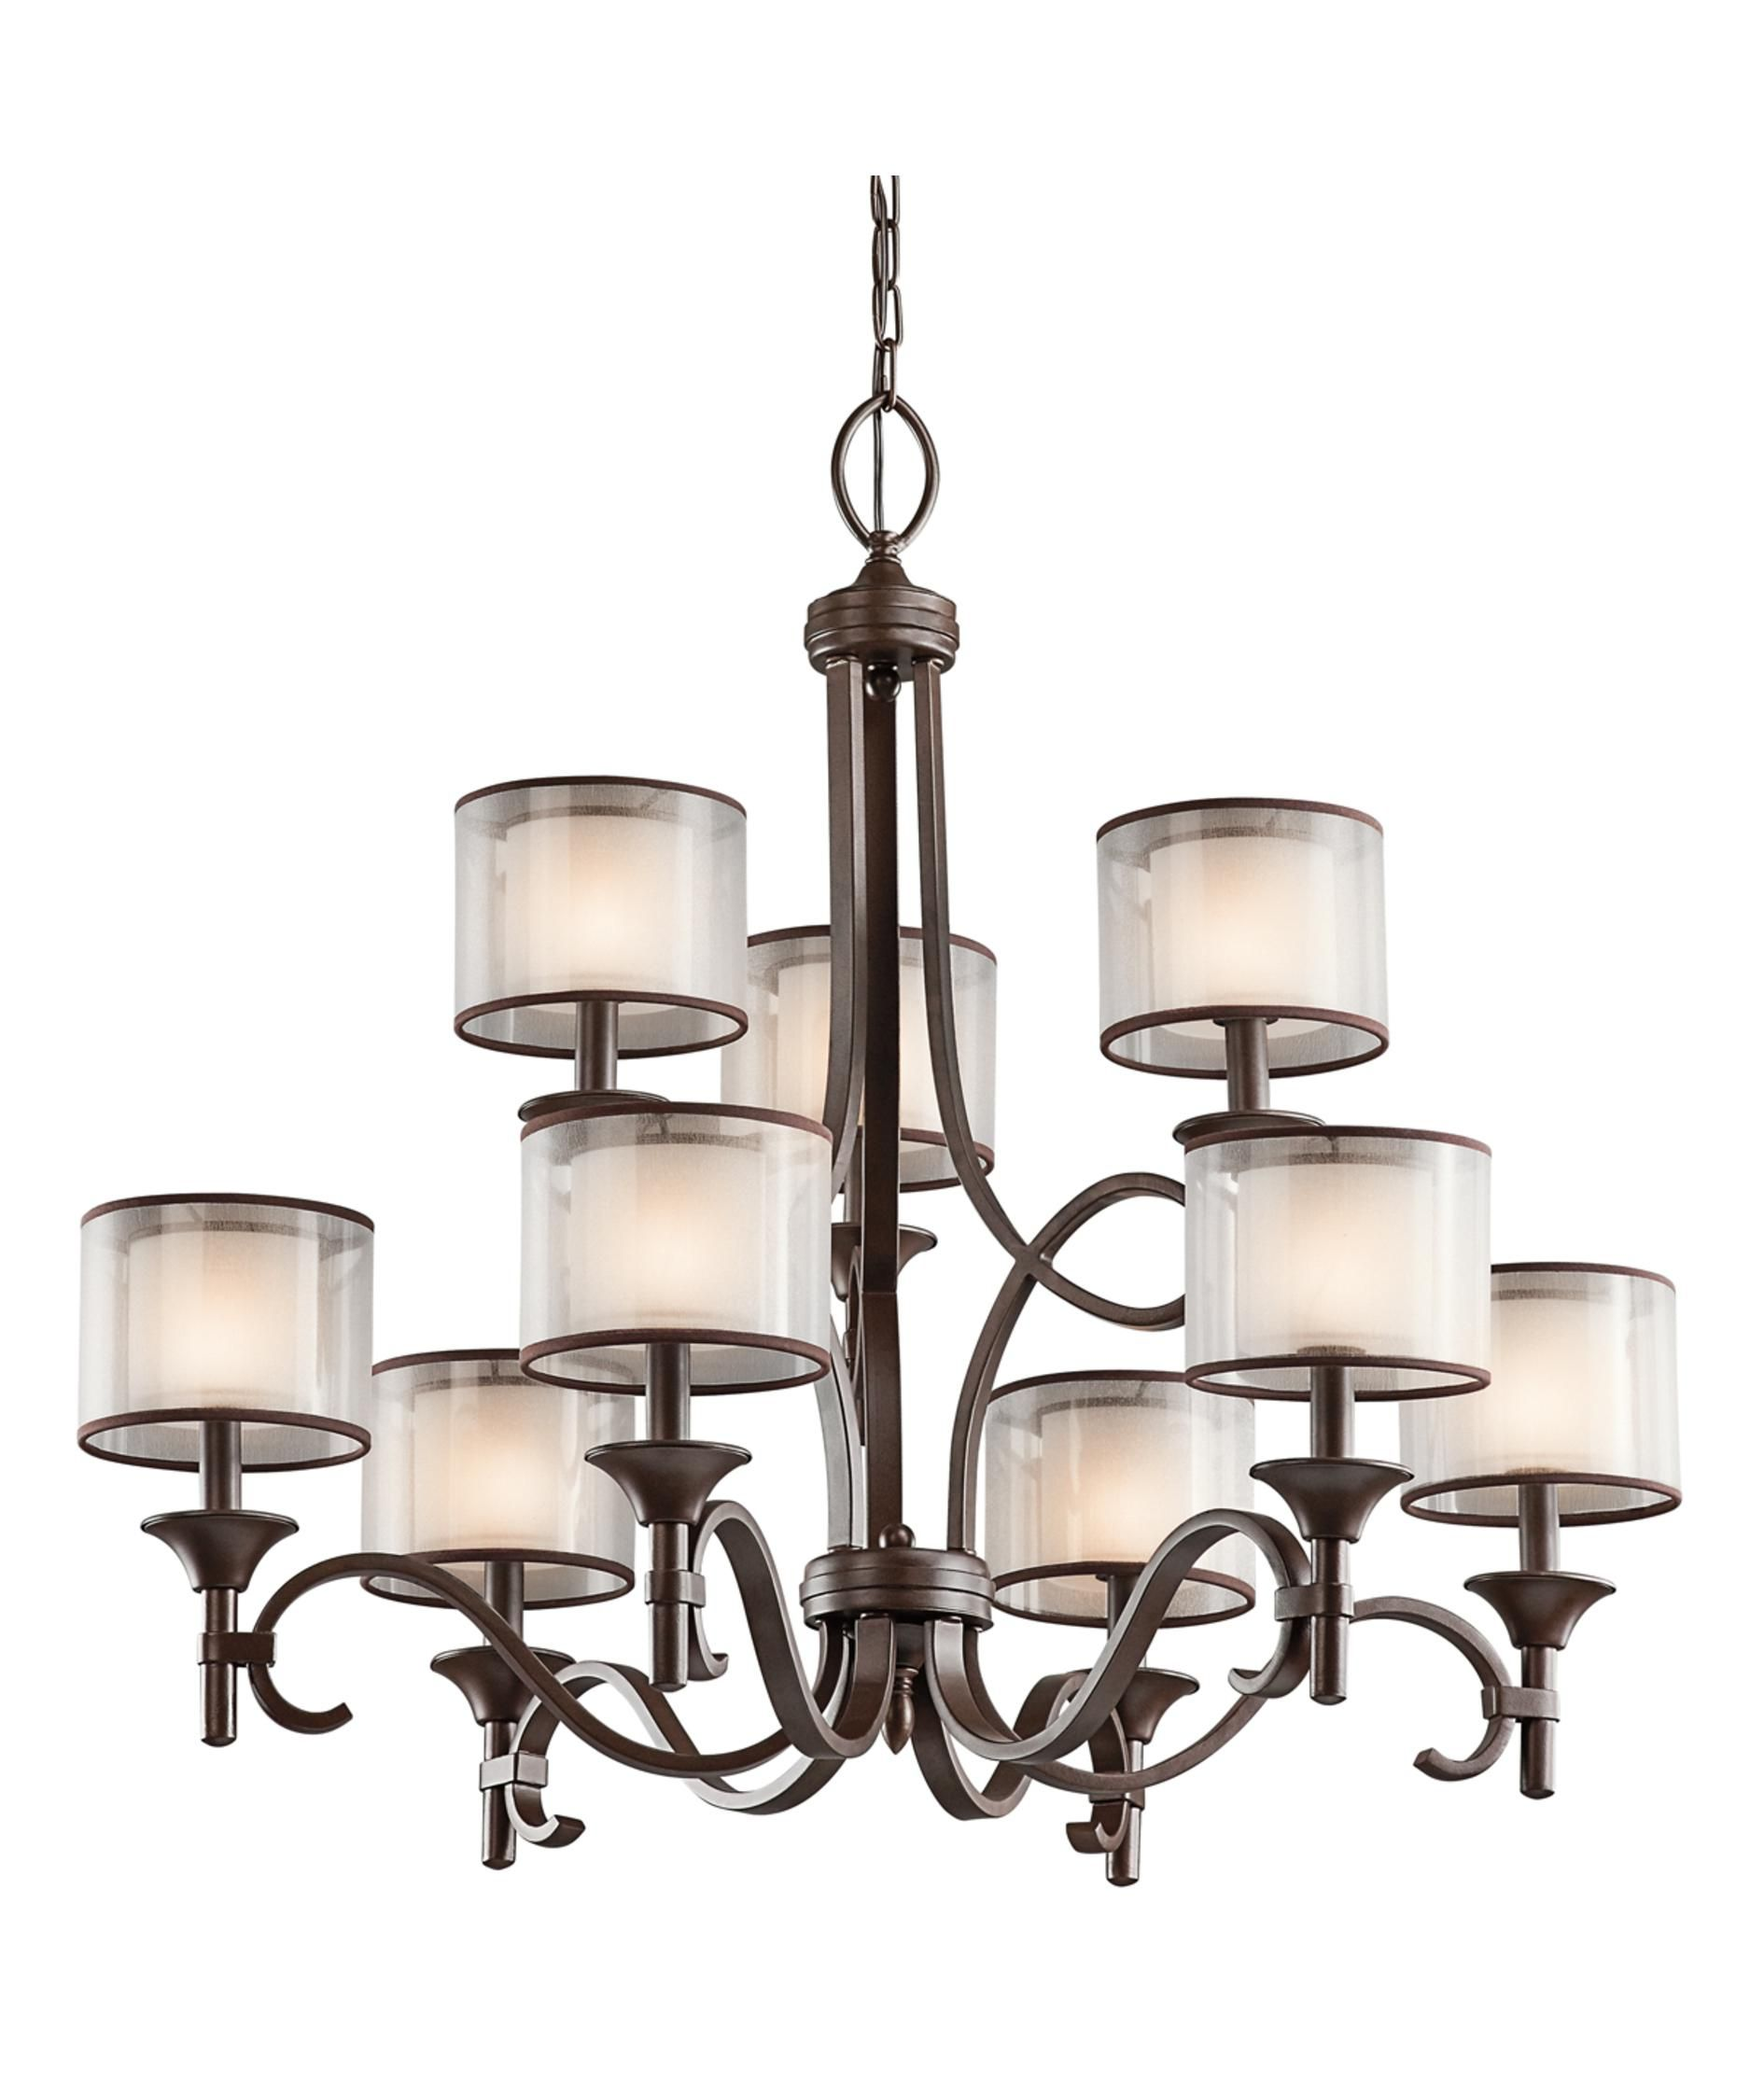 Lacey 34 Inch 9 Light Chandelier By Kichler Lighting In 2020